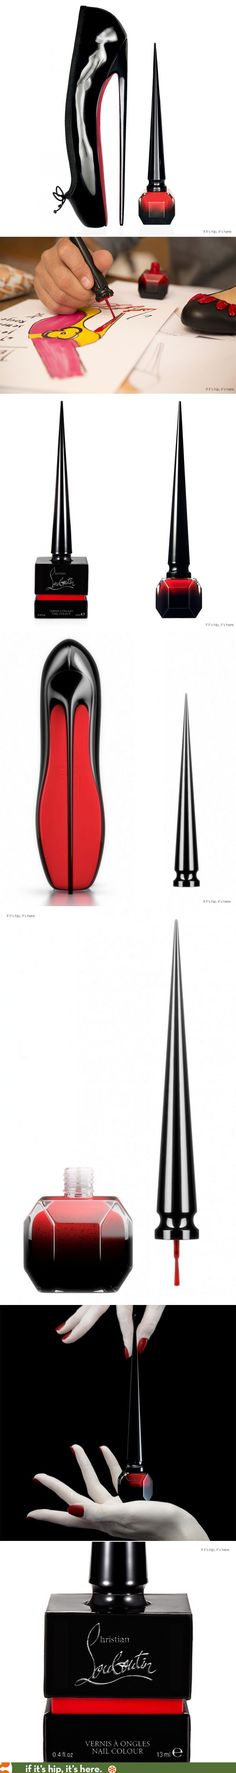 """The story behind the bottle design and packing for Rouge Louboutin, the new nail lacquer from Christian Louboutin. With a cap inspired by the 8"""" heel of the Ballet Ultima shoe and a peek-a-boo box in patent leather."""